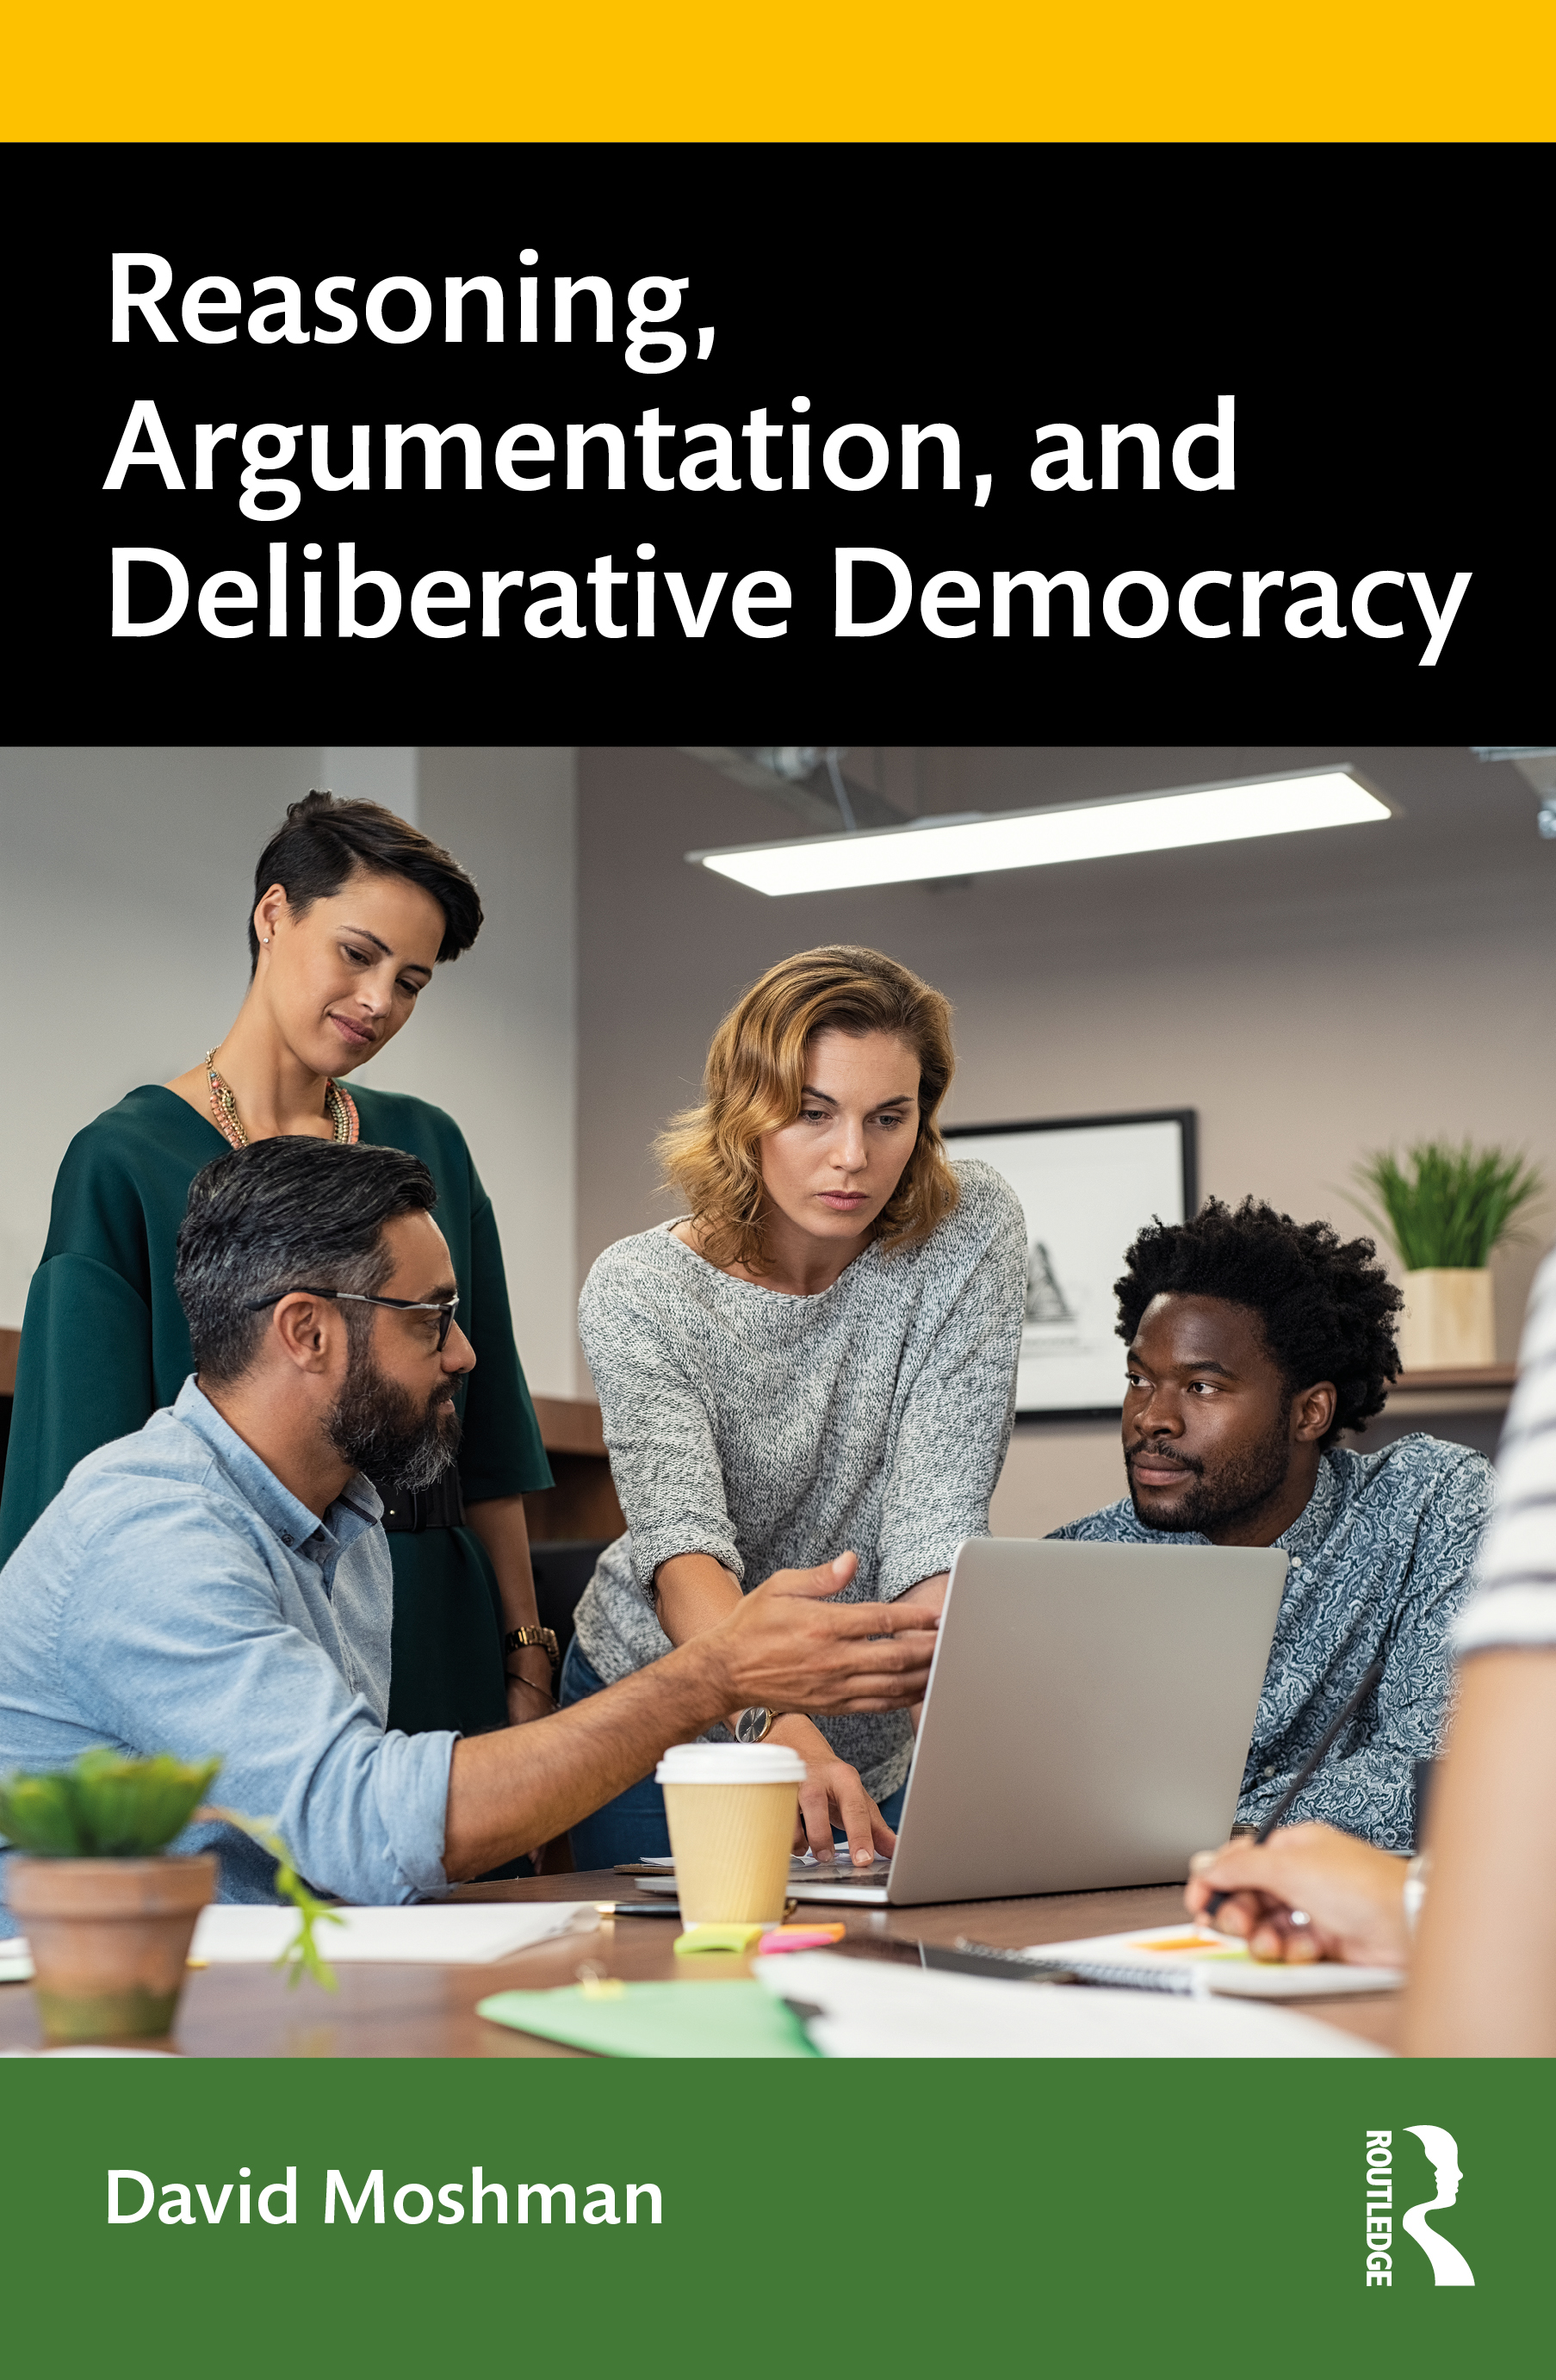 Reasoning, Argumentation, and Deliberative Democracy